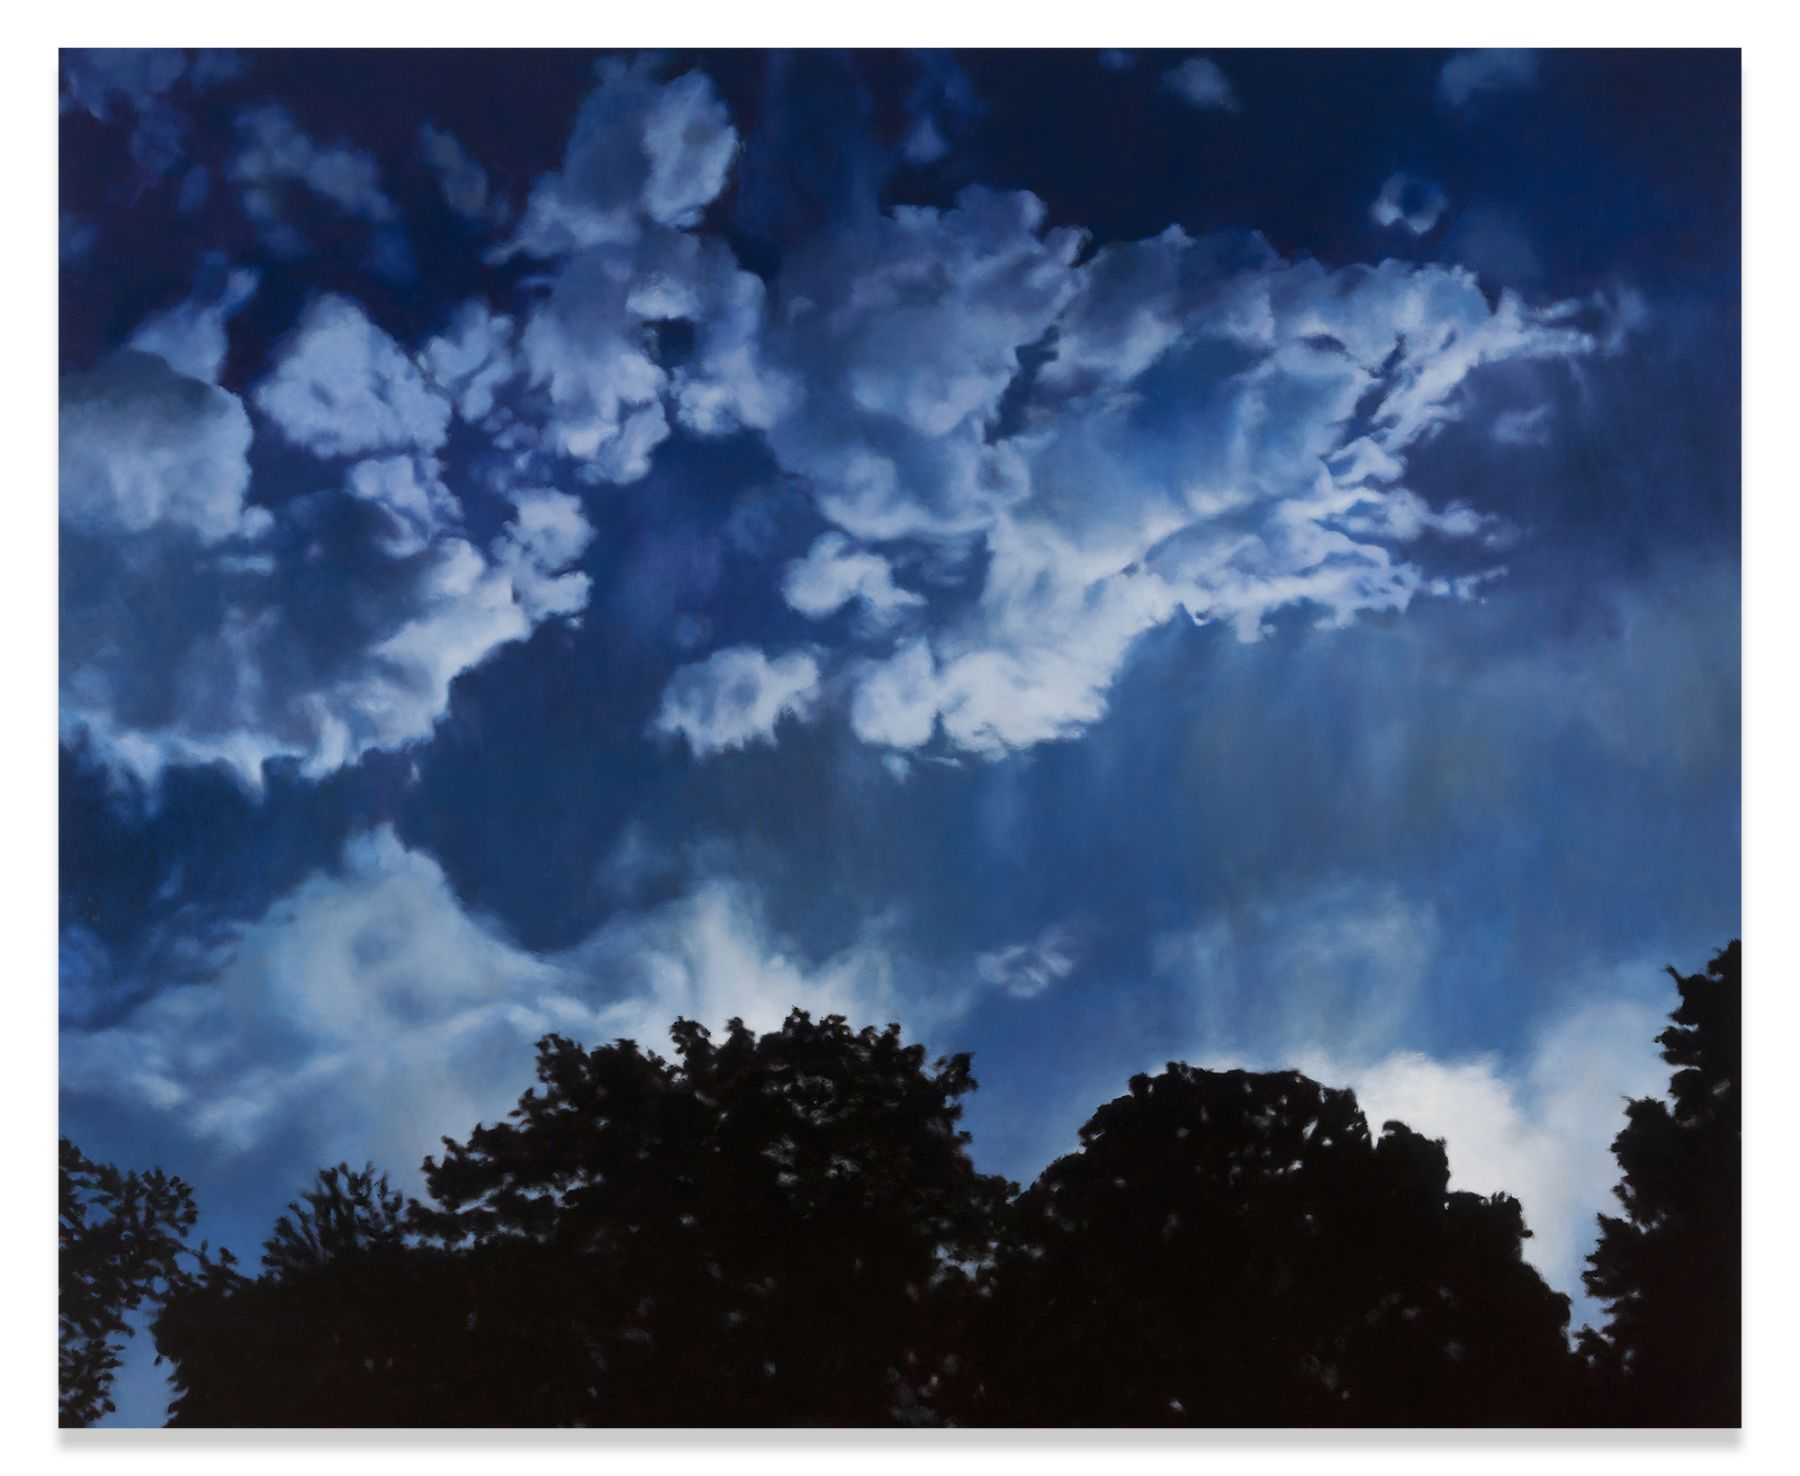 Blue Day, Blue Night, 2016, Oil on linen, 73 x 88 1/2 inches, 185.4 x 224.8 cm, MMG#30402